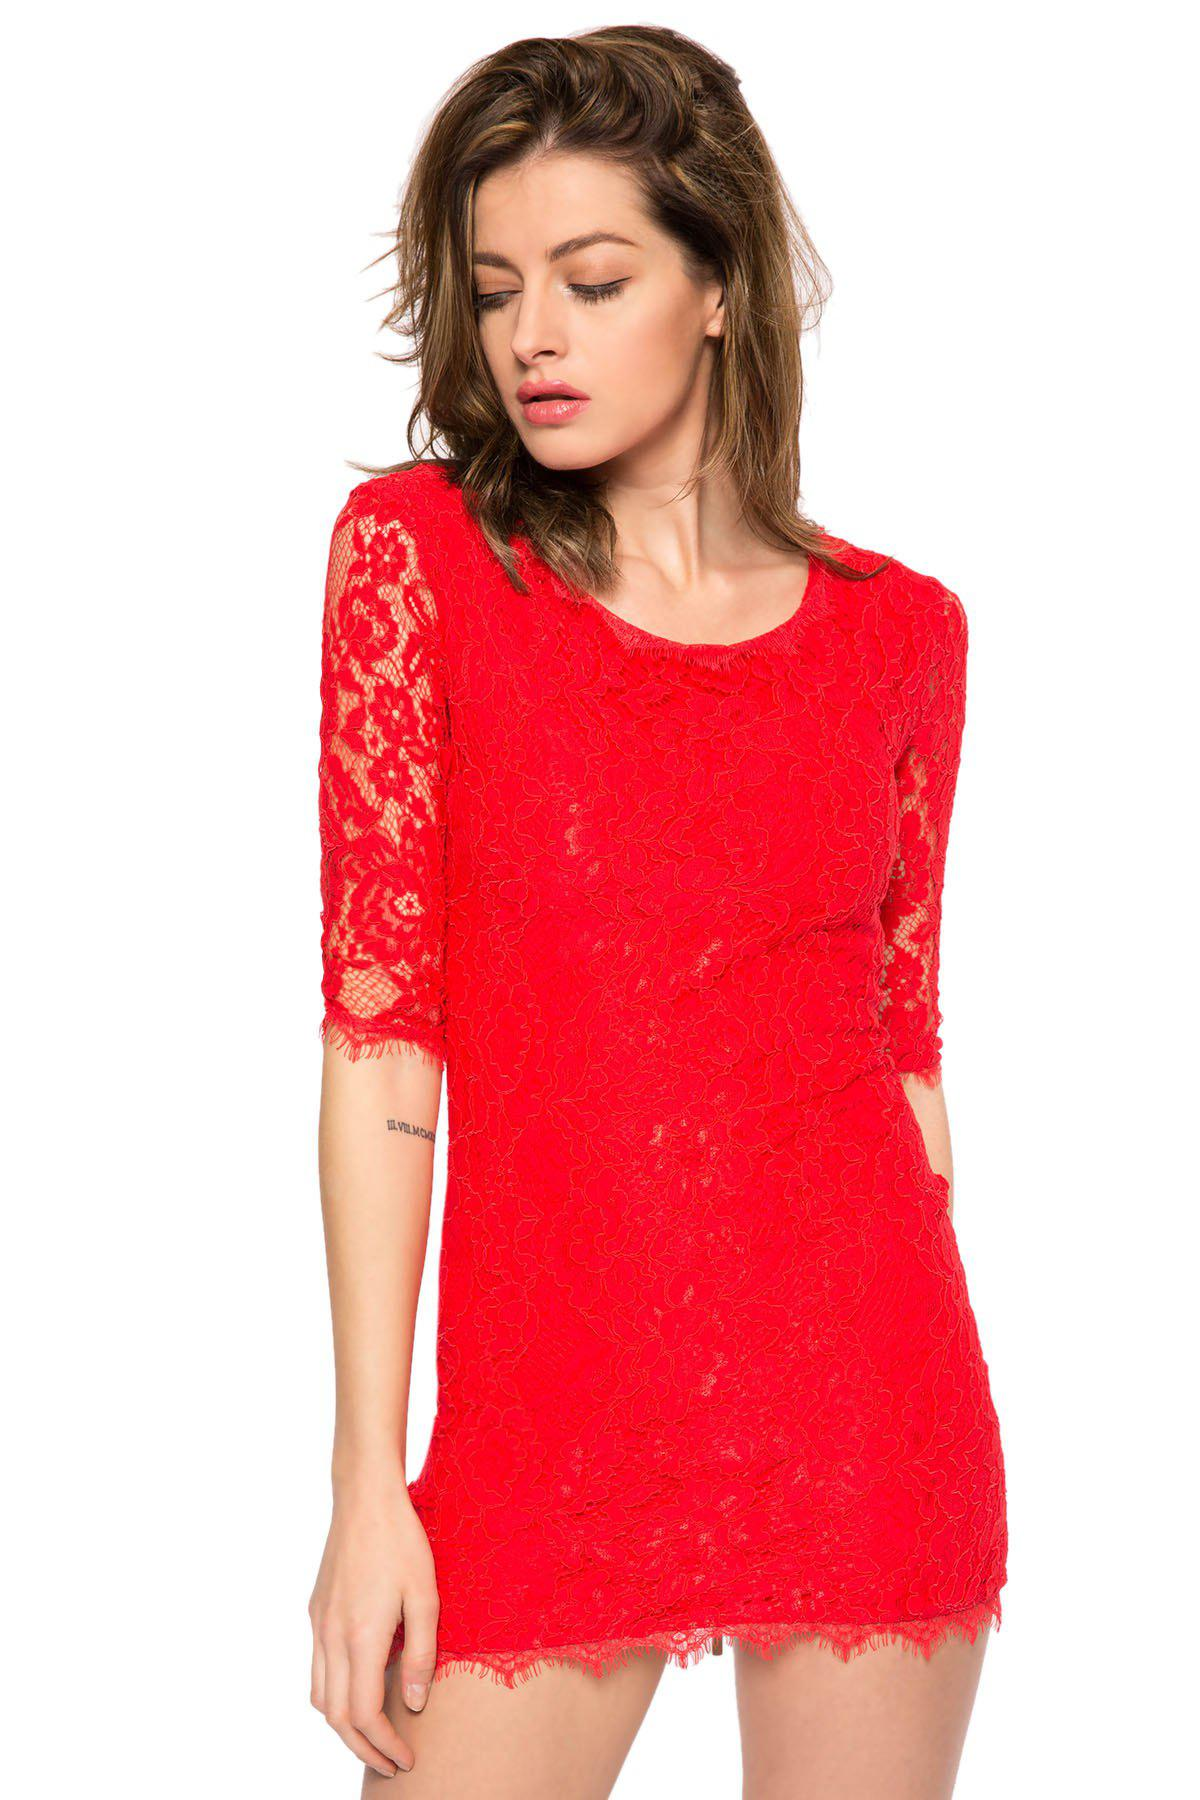 Cheap Trendy Style Scoop Collar 3/4 Sleeve Solid Color Slimming Women's Lace Dress